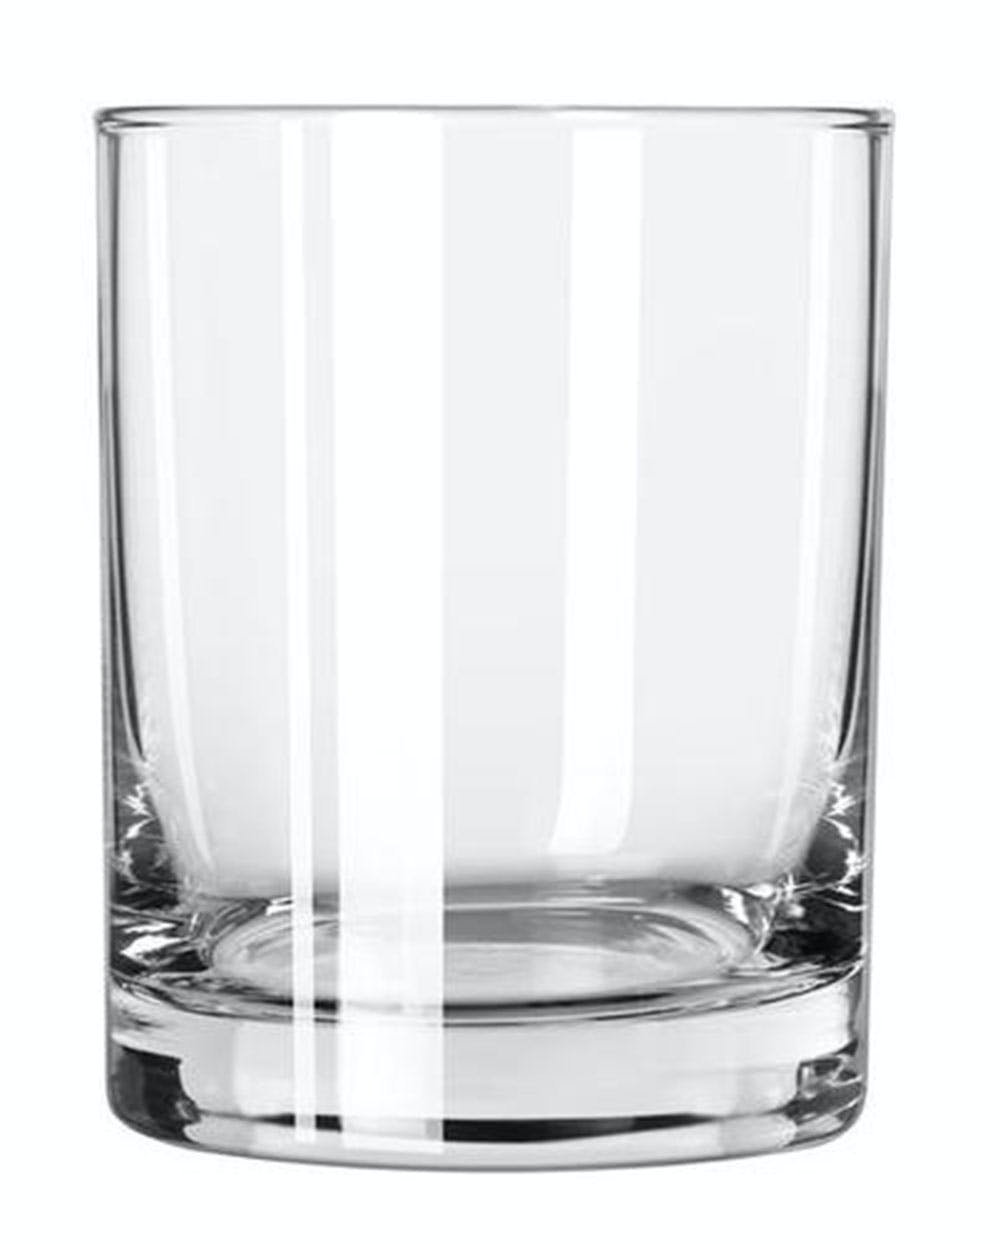 G3232 - 14oz Double Old Fashioned Glass - sold by PyroGraphics